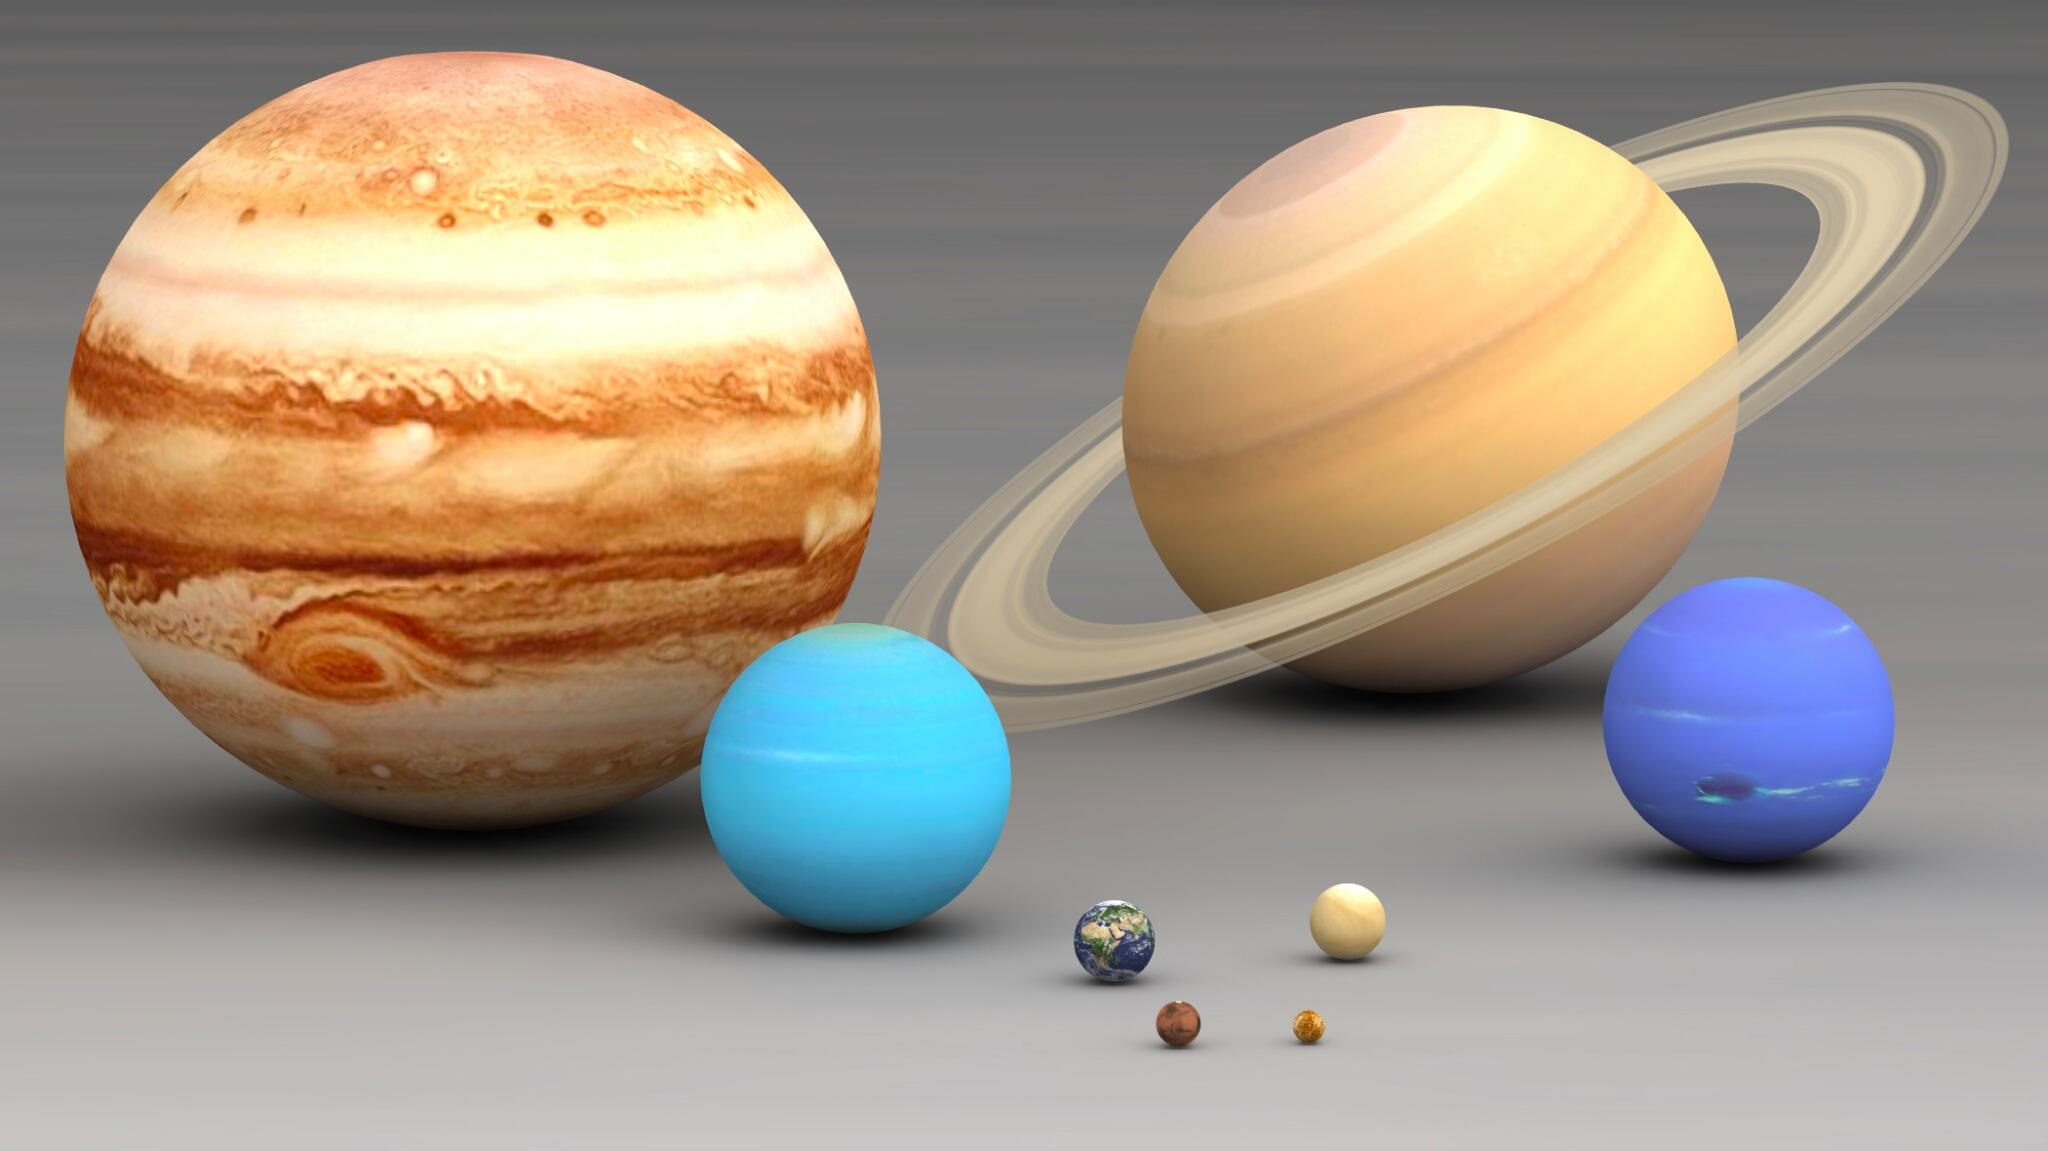 RT @MrHistory123: Awesome pic showing the size of the 8 planets in our solar system relative to each other. #Space #Science http://t.co/Z5wTzm8O5G